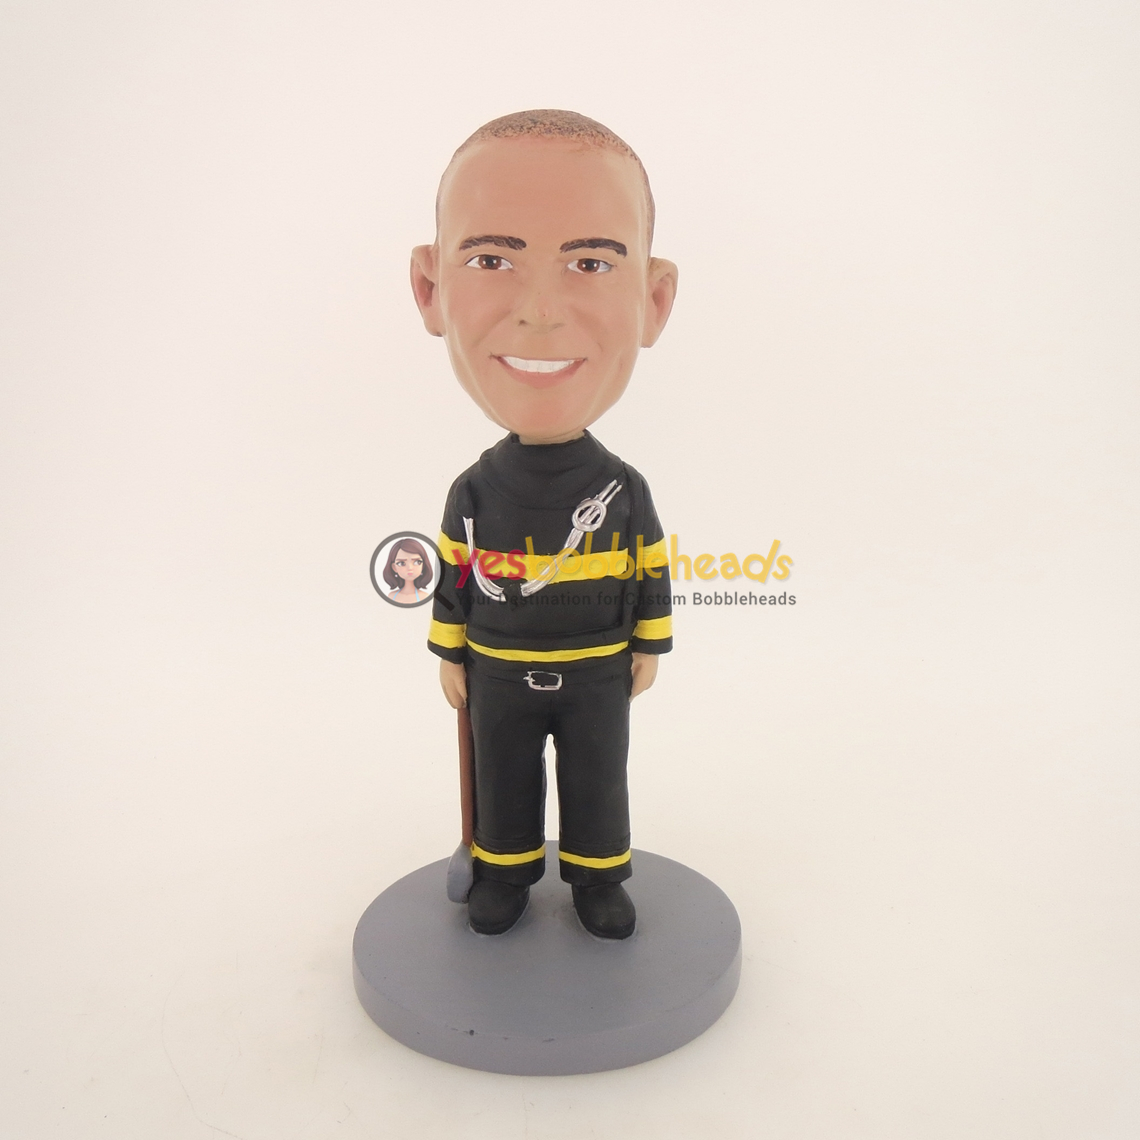 Picture of Custom Bobblehead Doll: Fireman Holding Hammer